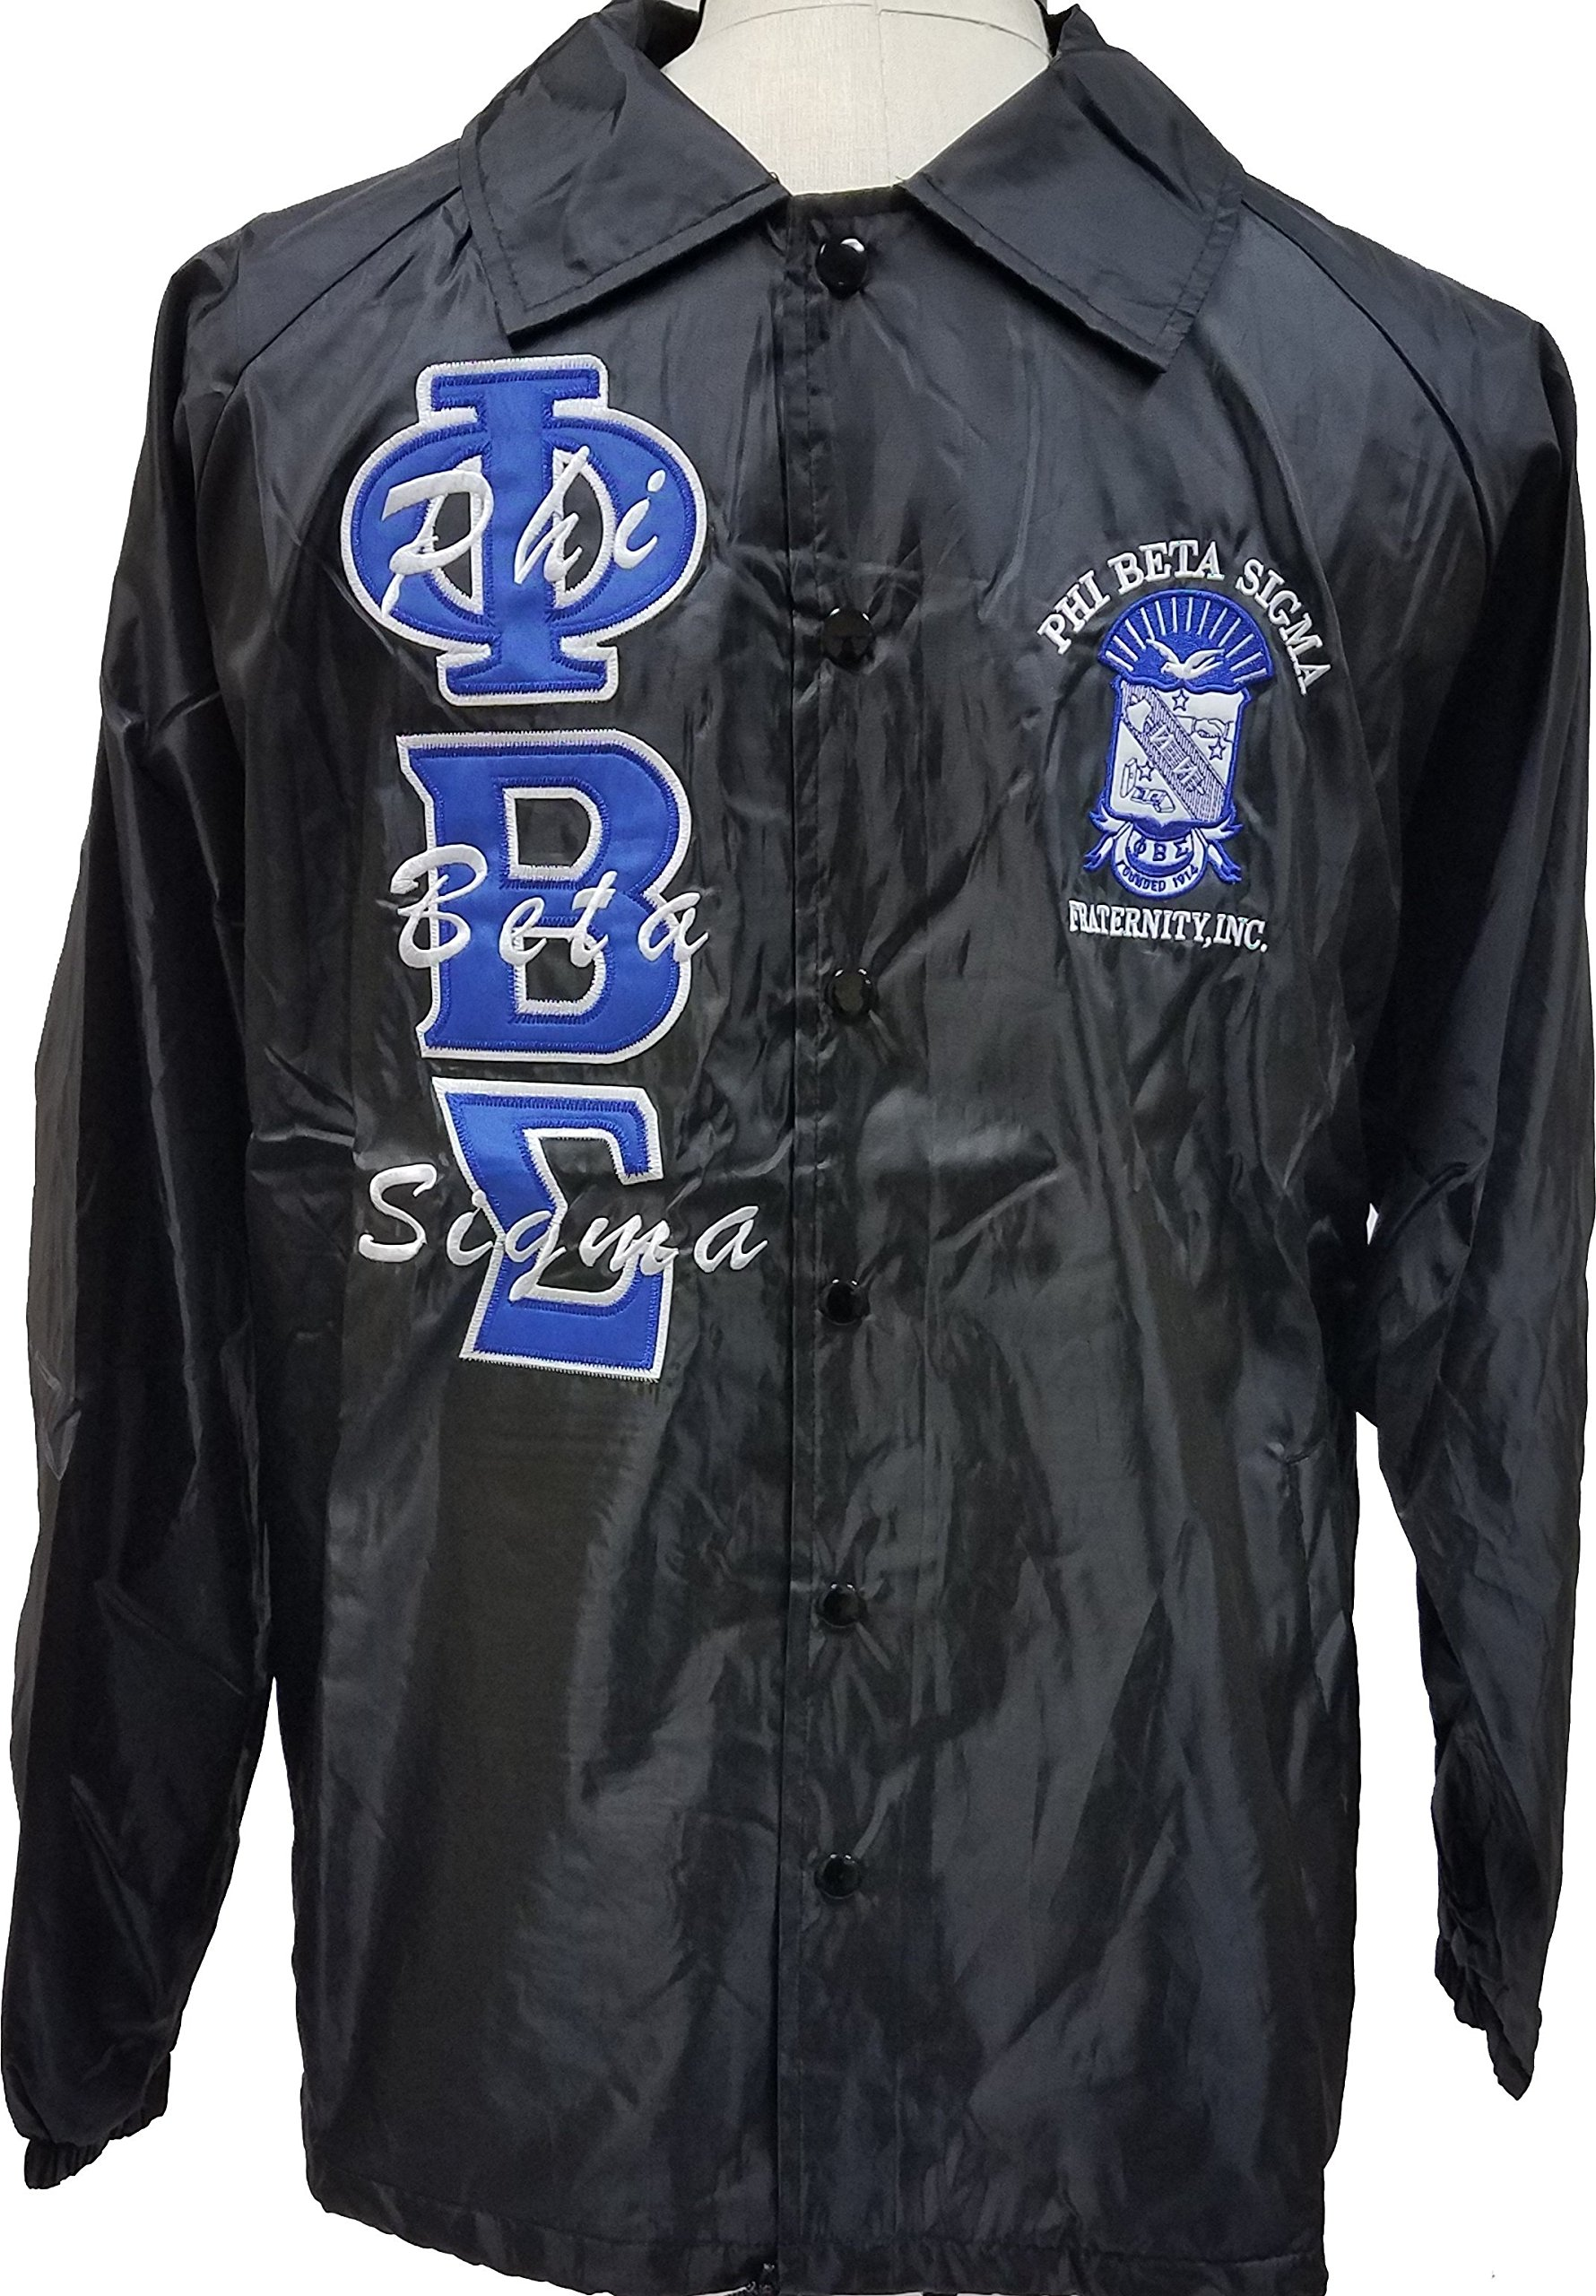 Phi Beta Sigma Mens Crossing Line Jacket [Black - 2XL] by Cultural Exchange